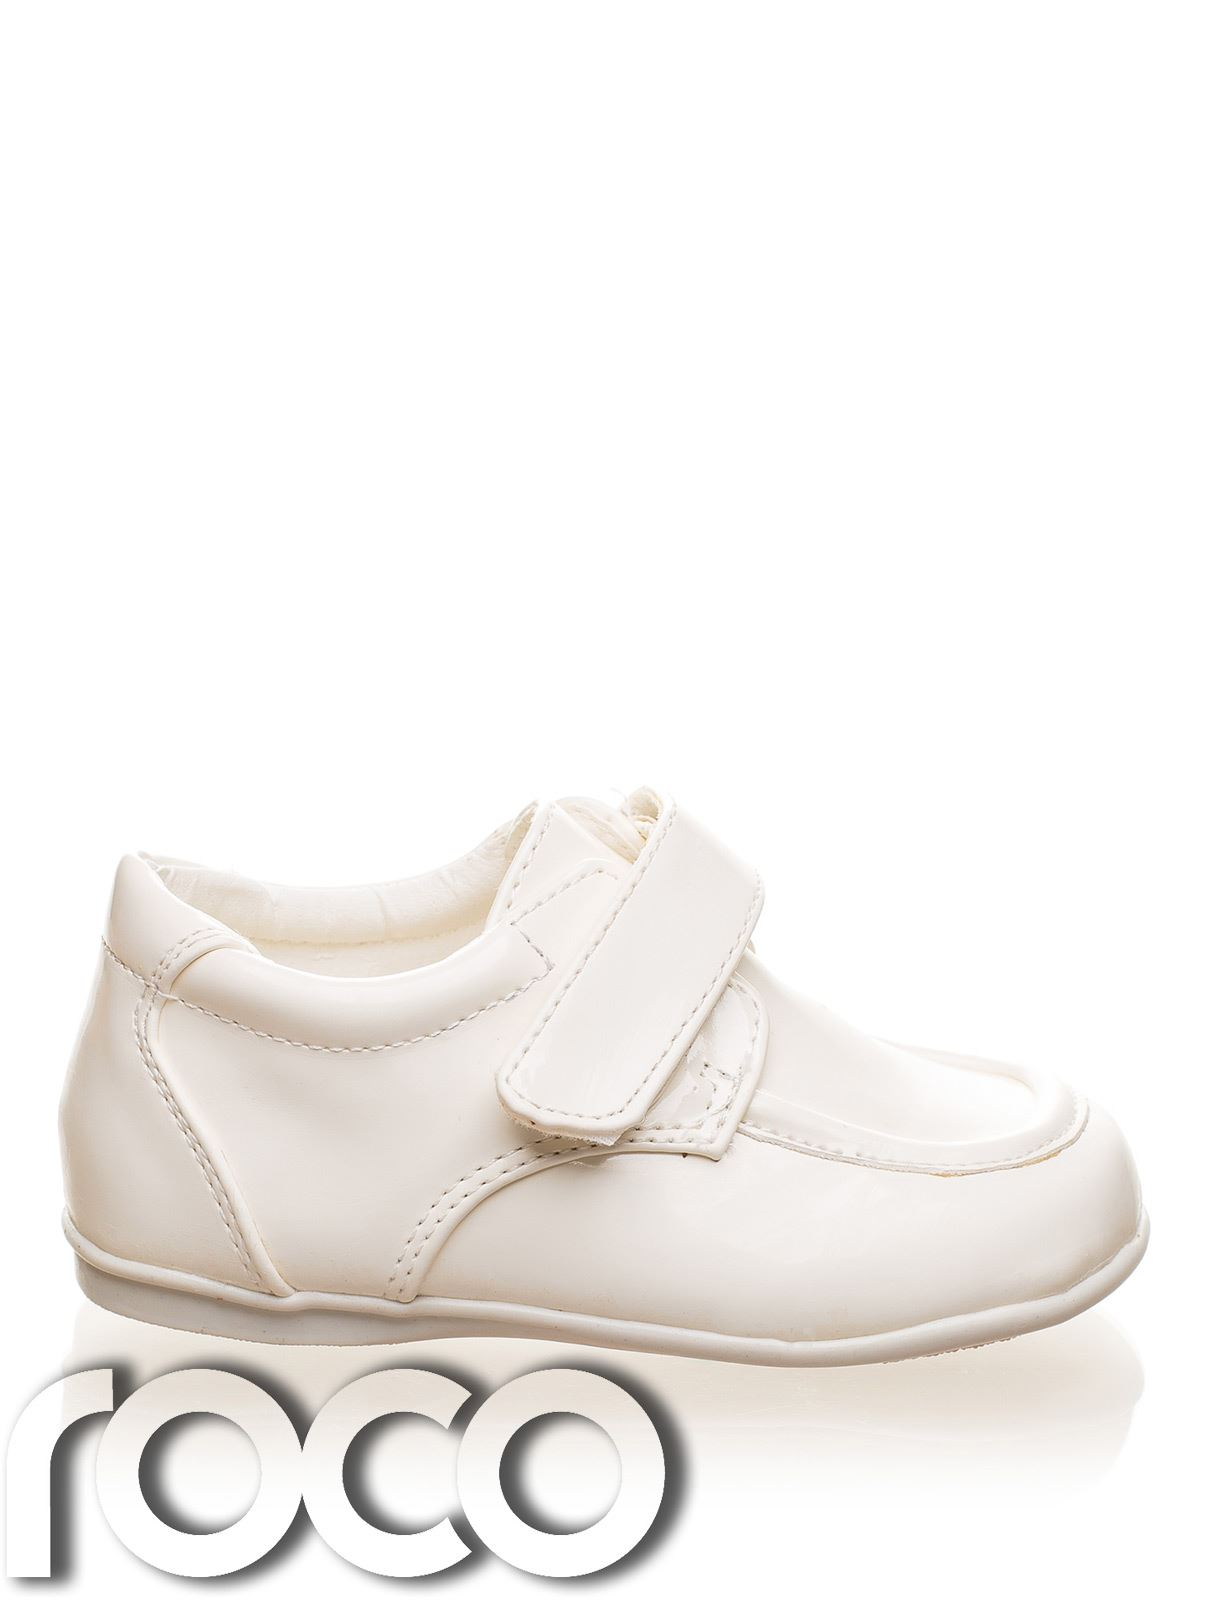 Childrens-Baby-Boys-Cream-Shoes-Velcro-Wedding-Page-Boy-Christening-Kids-Shoes